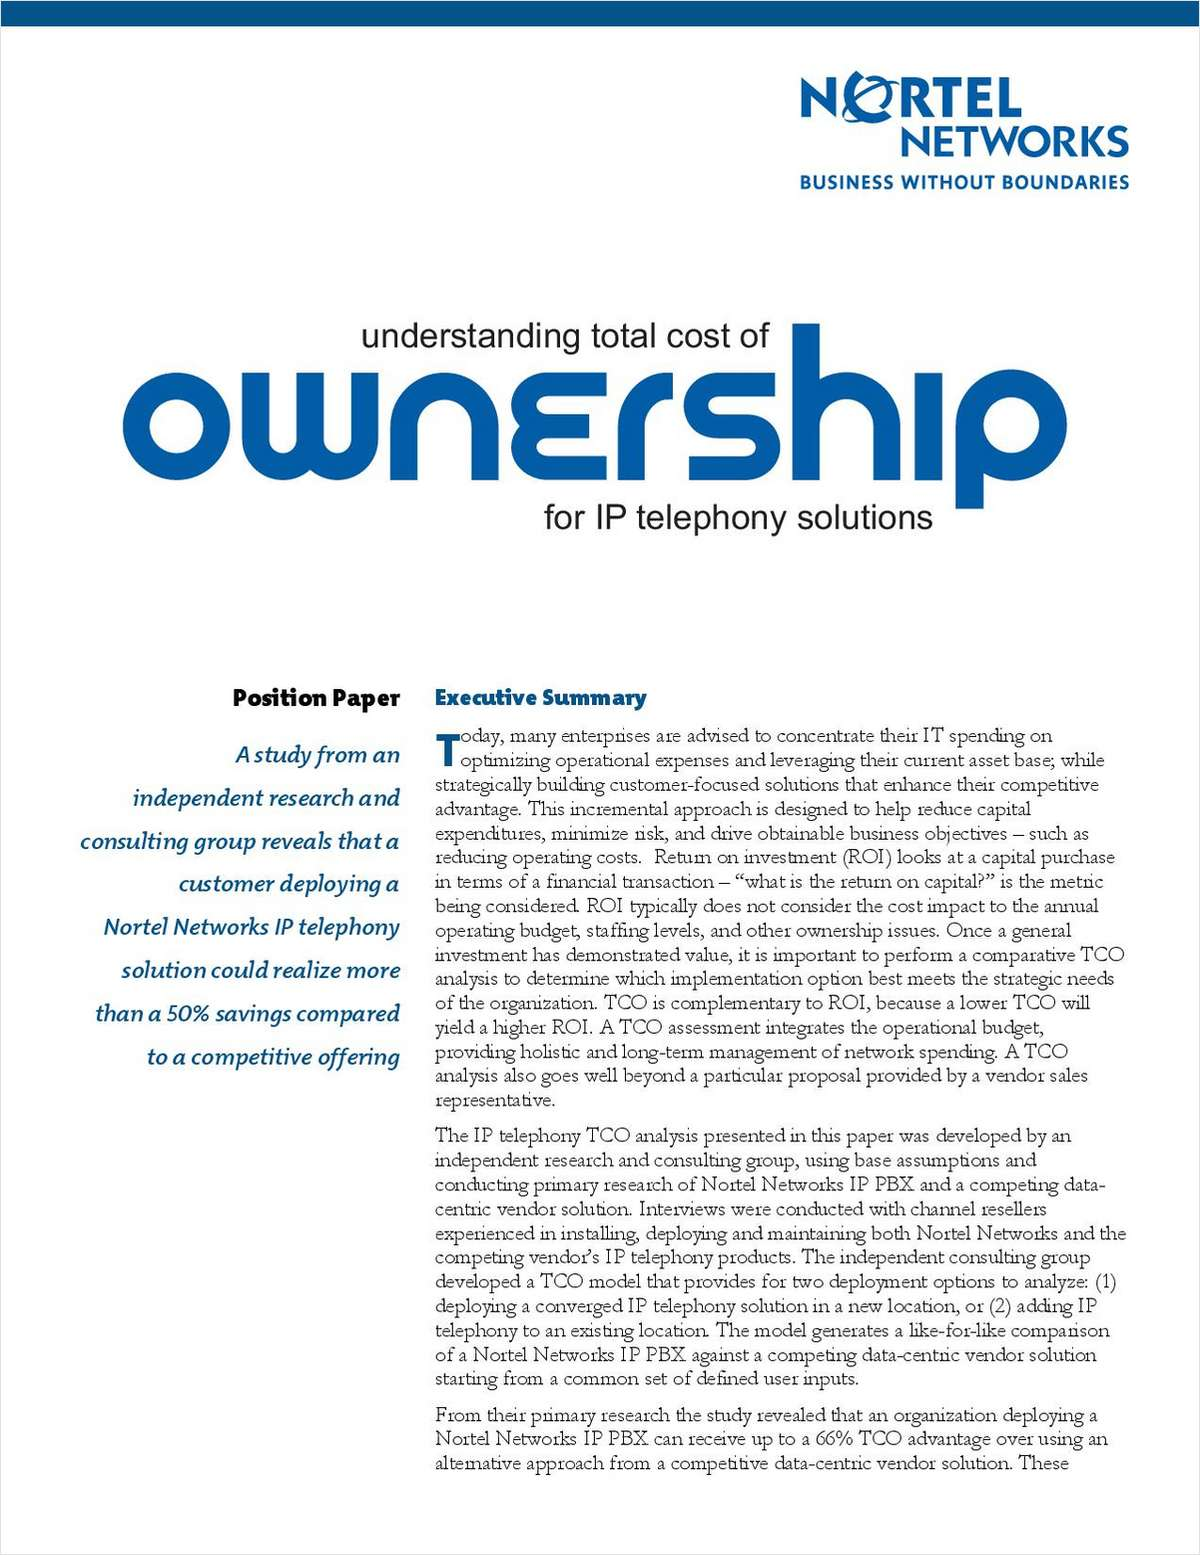 Understanding Total Cost of Ownership for IP Telephony Solutions